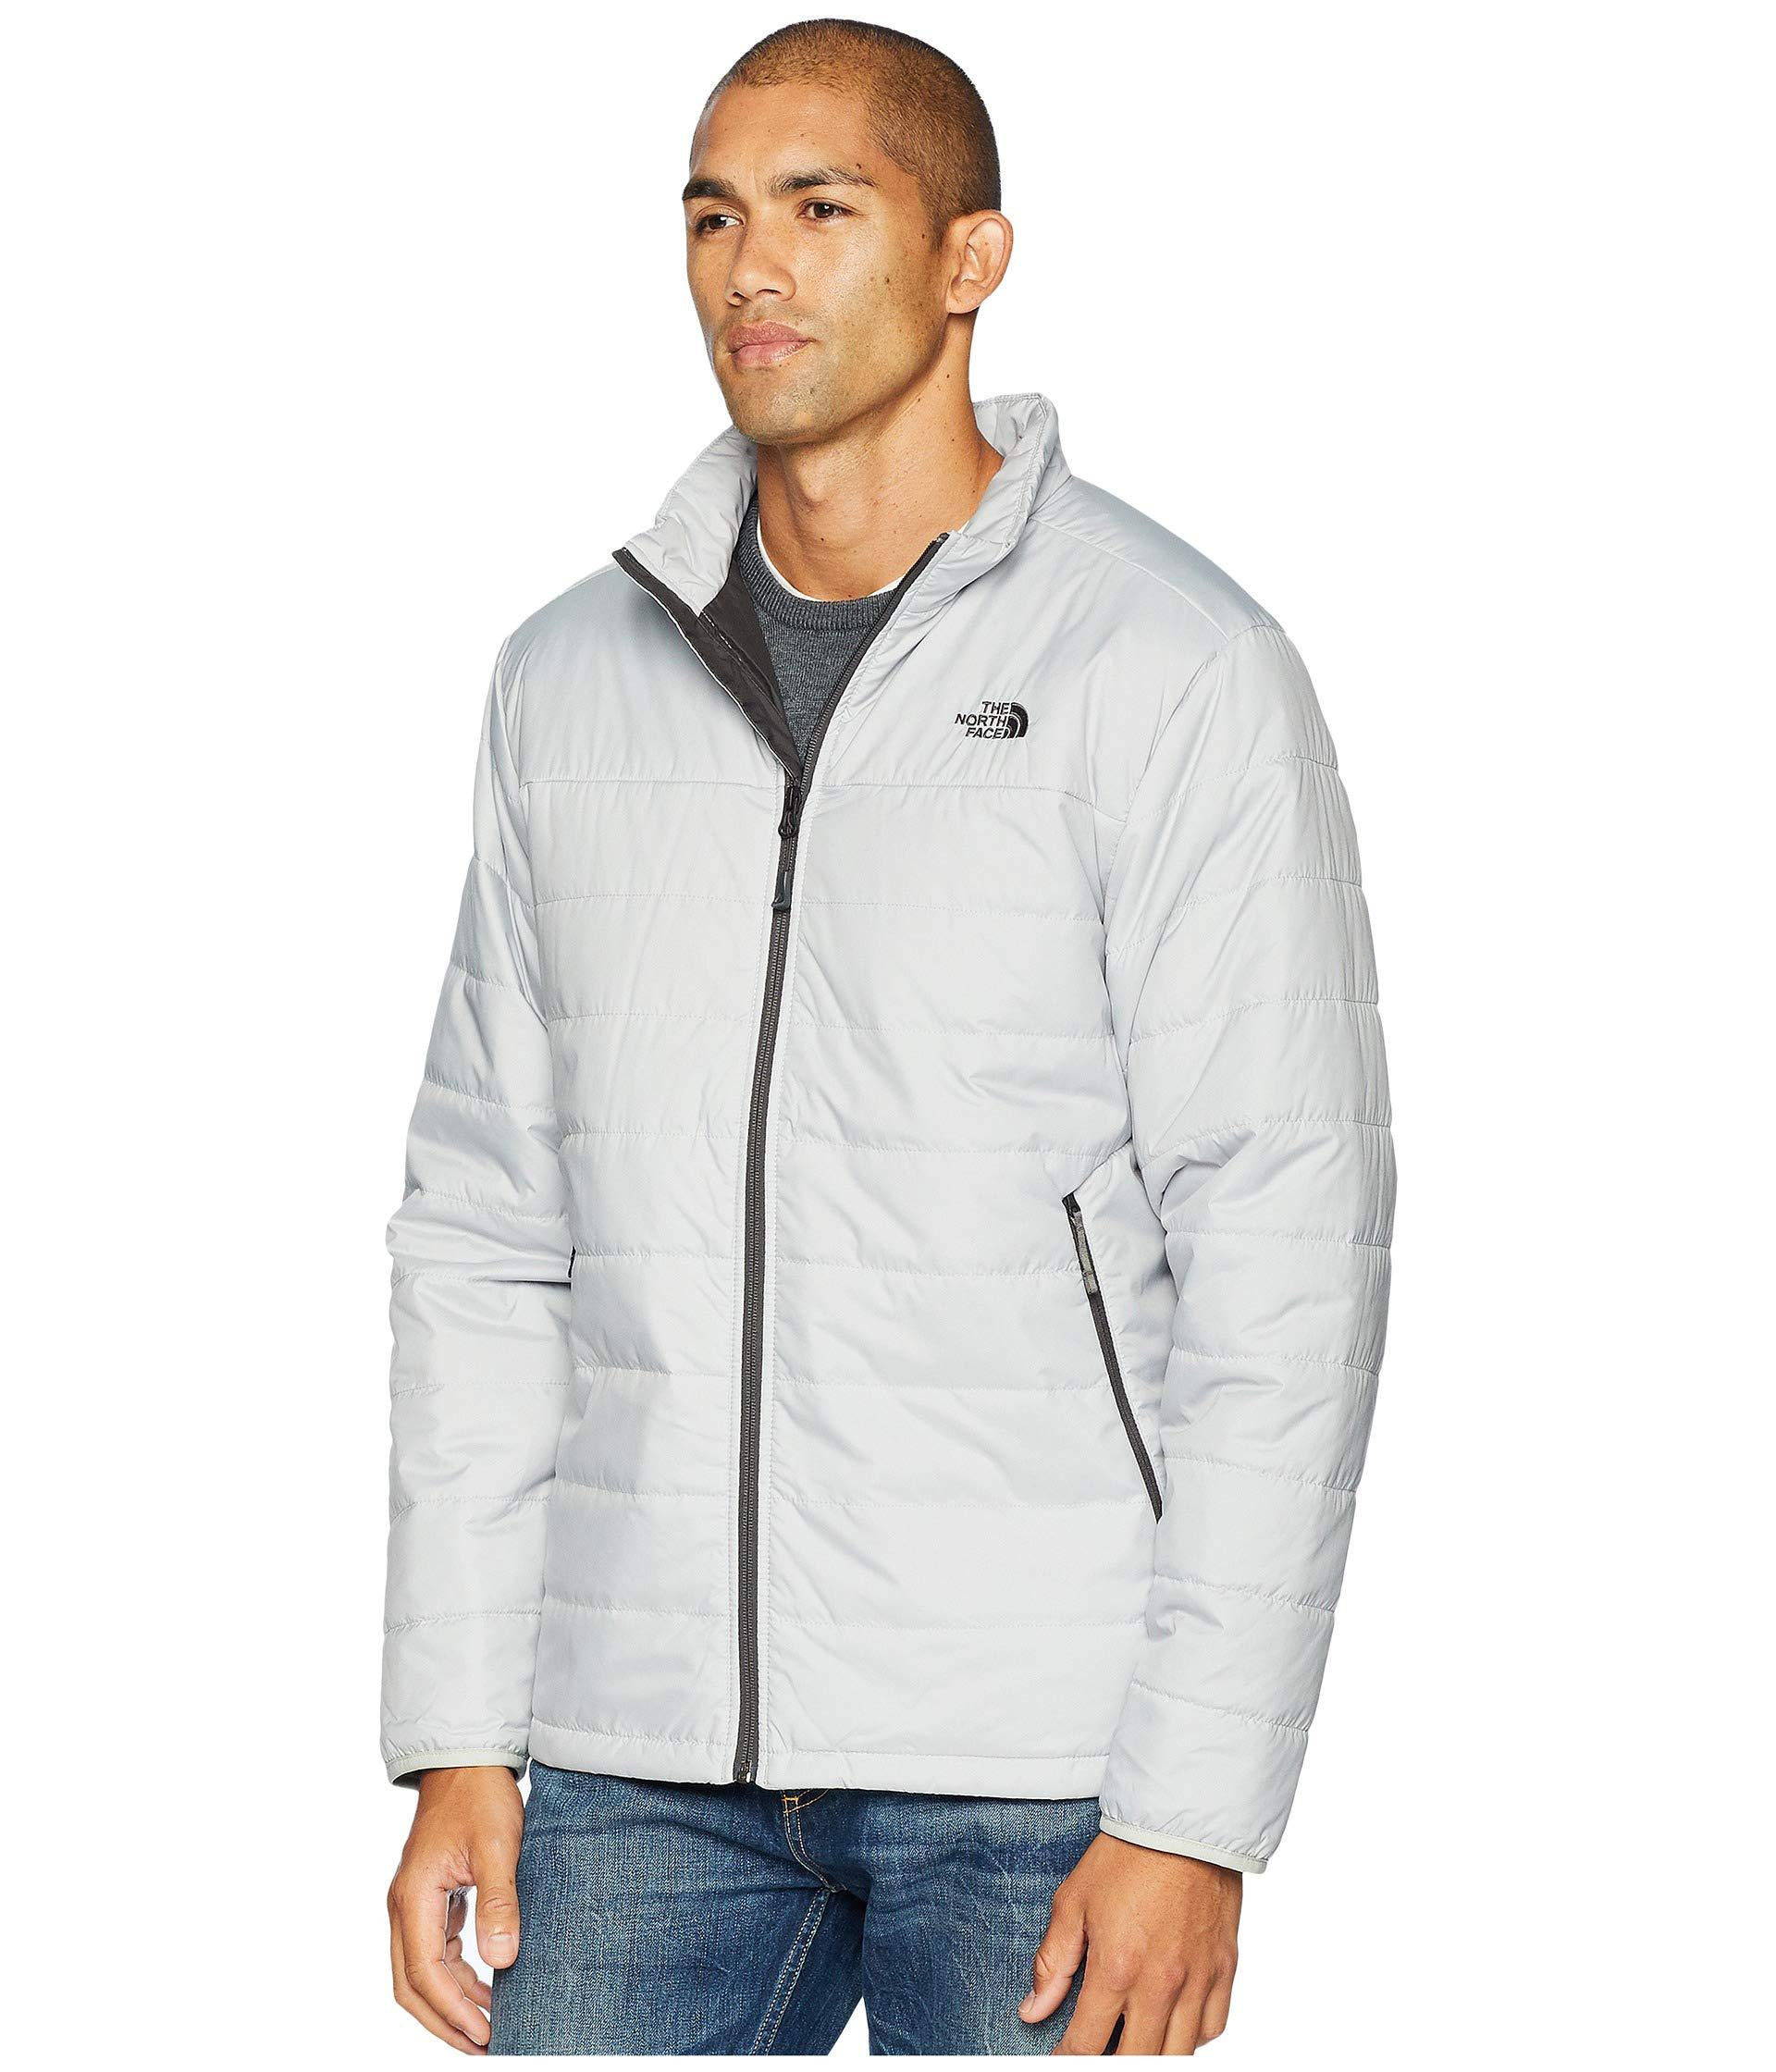 Lyst - The North Face Bombay Jacket (beech Green) Men s Jacket in Gray for  Men 332c42645